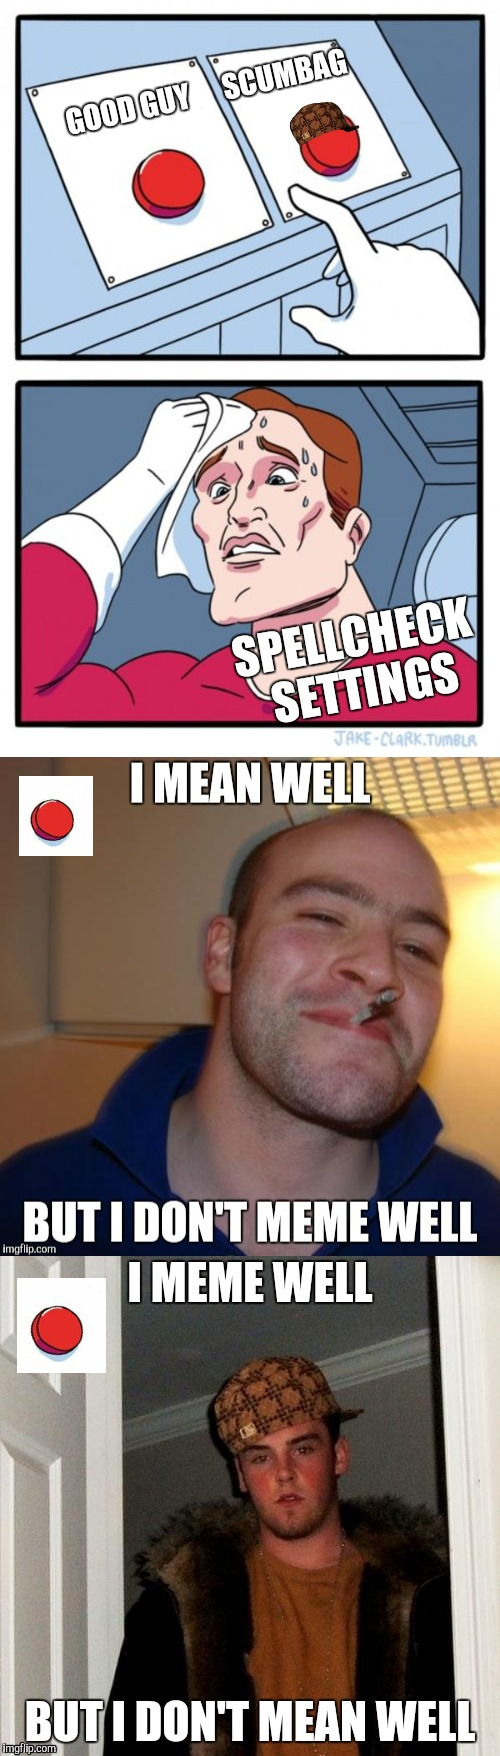 What Mood Are You In? | GOOD GUY      SCUMBAG SPELLCHECK SETTINGS | image tagged in two buttons,spell check | made w/ Imgflip meme maker